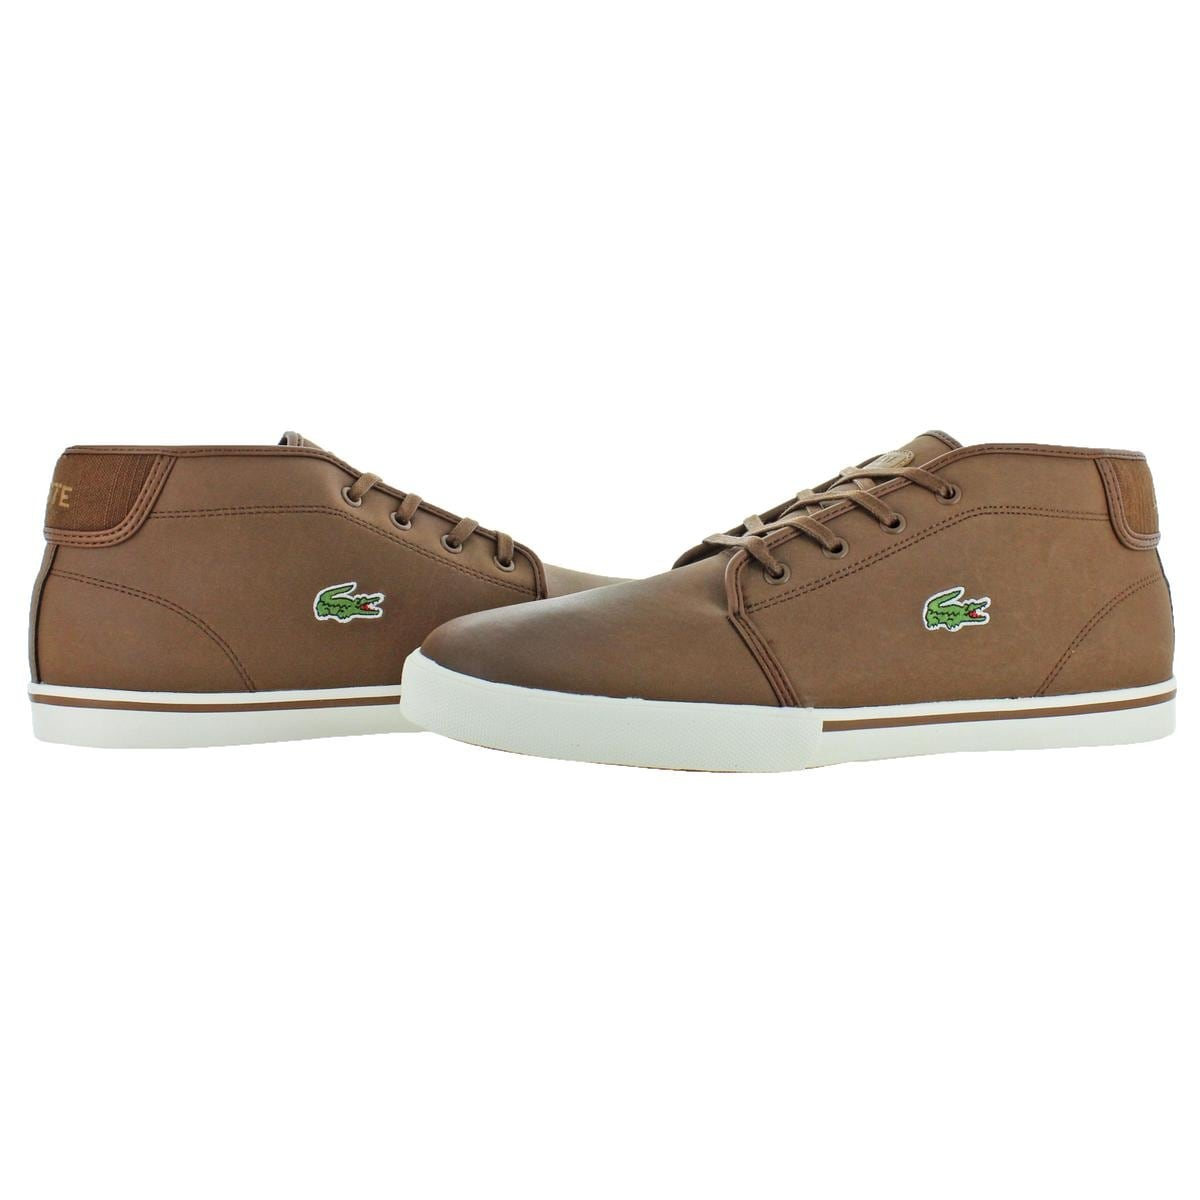 25025c28e3ea2b Shop Lacoste Mens Ampthill Chukka Leather Casual - Free Shipping ...